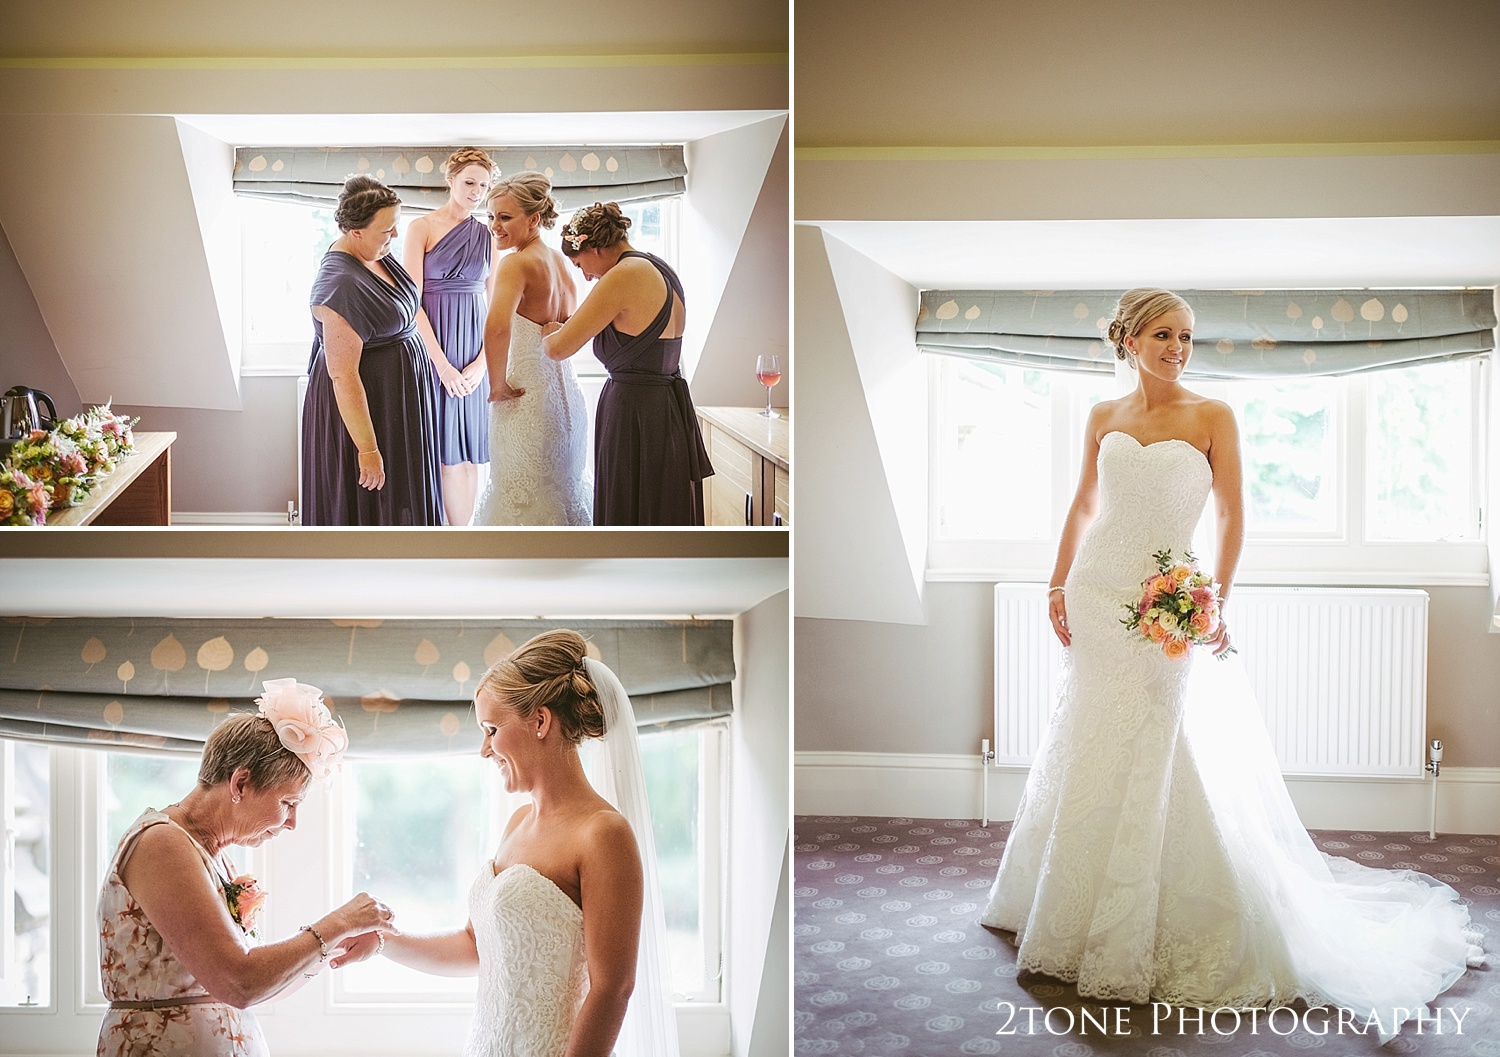 The bride at Jesmond Dene House in Newcastle by 2tone Photography www.2tonephotography.co.uk